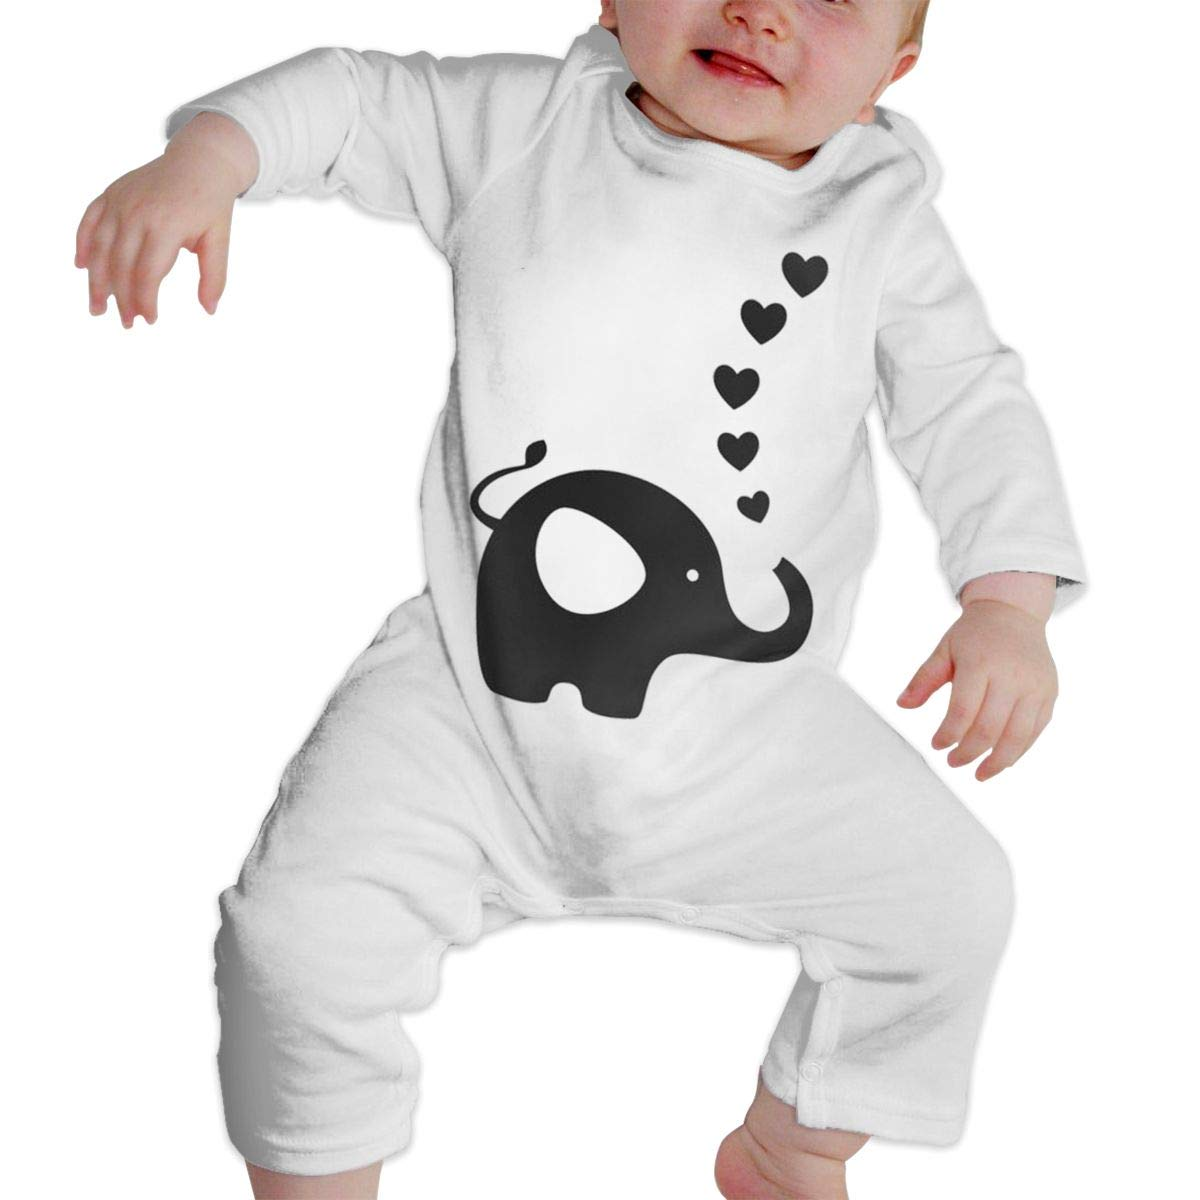 Gary Katte Baby Elephant Newborn Jumpsuit Infant Baby Girls Long-Sleeve Bodysuit Playsuit Outfits ClothesWhite